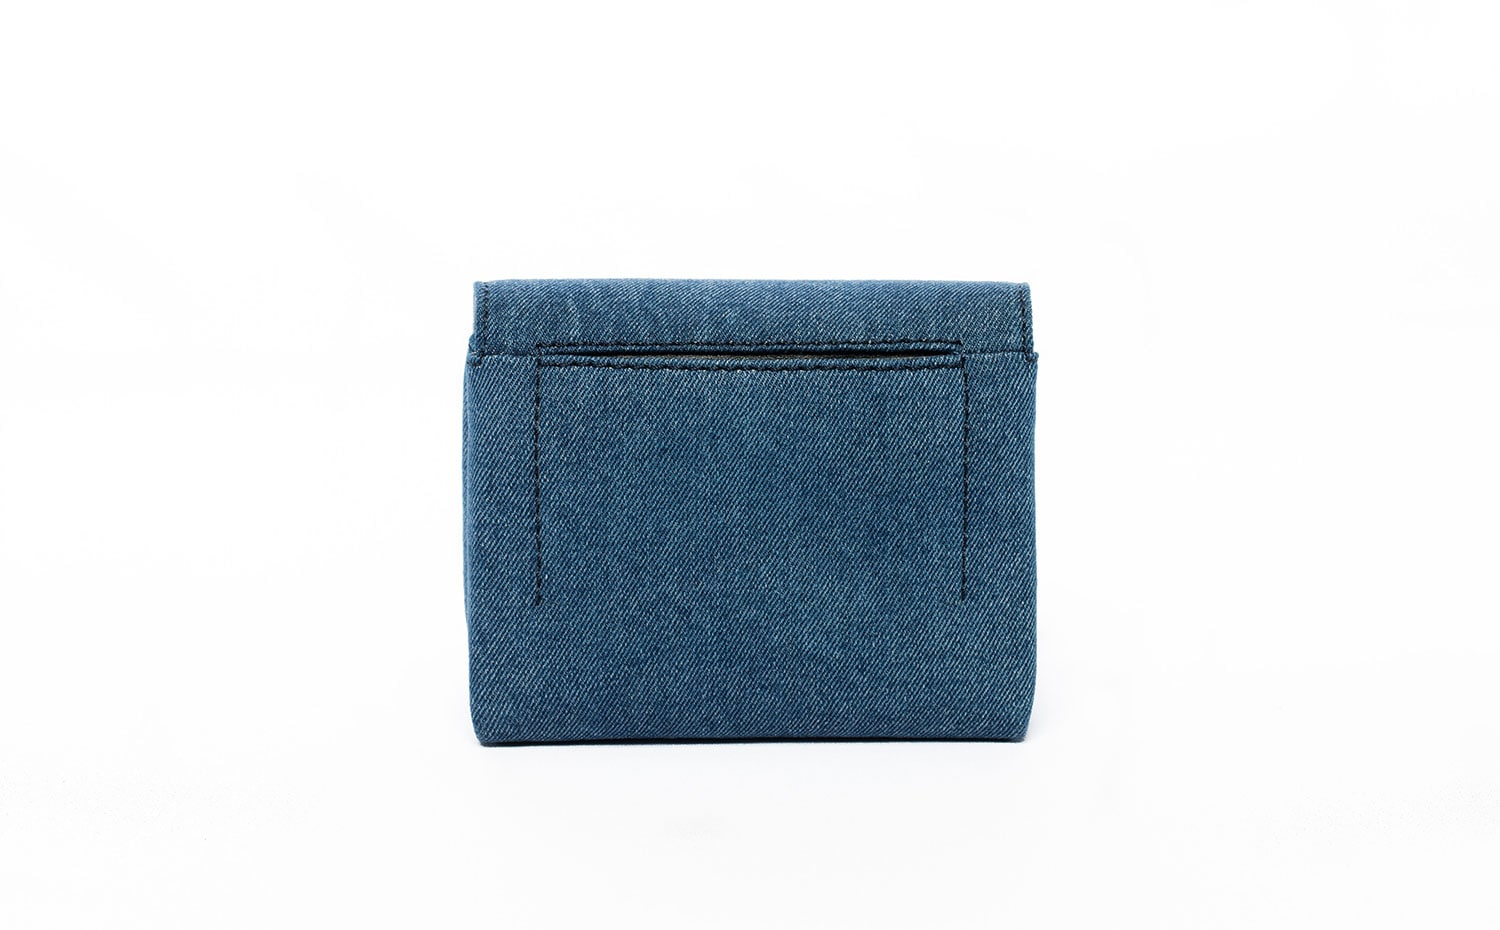 3.1 Phillip Lim: ALIX Soft Flap Clutch in Washed Indigo